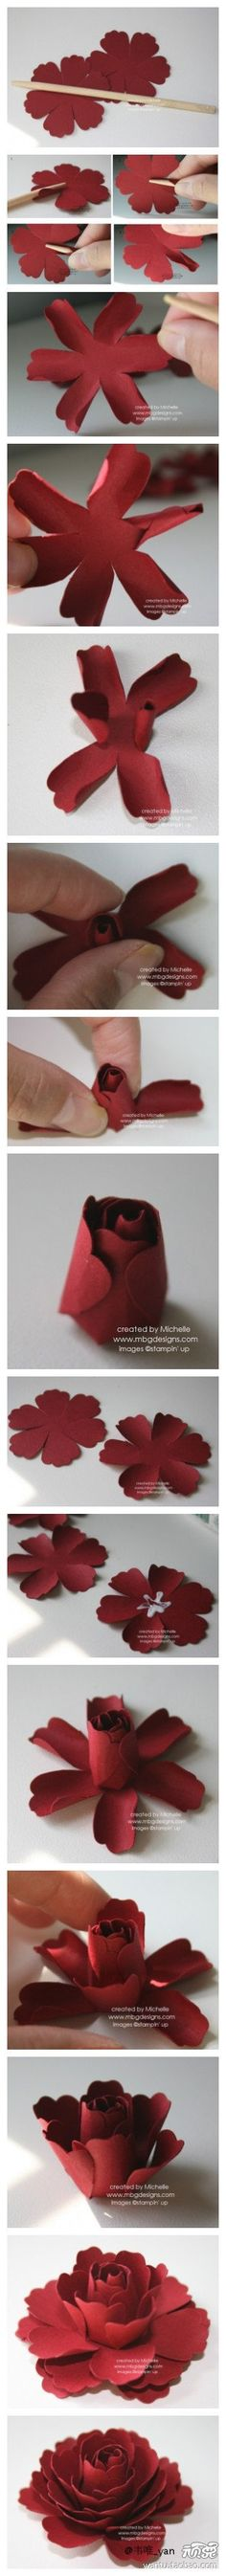 How to make a paper rose.